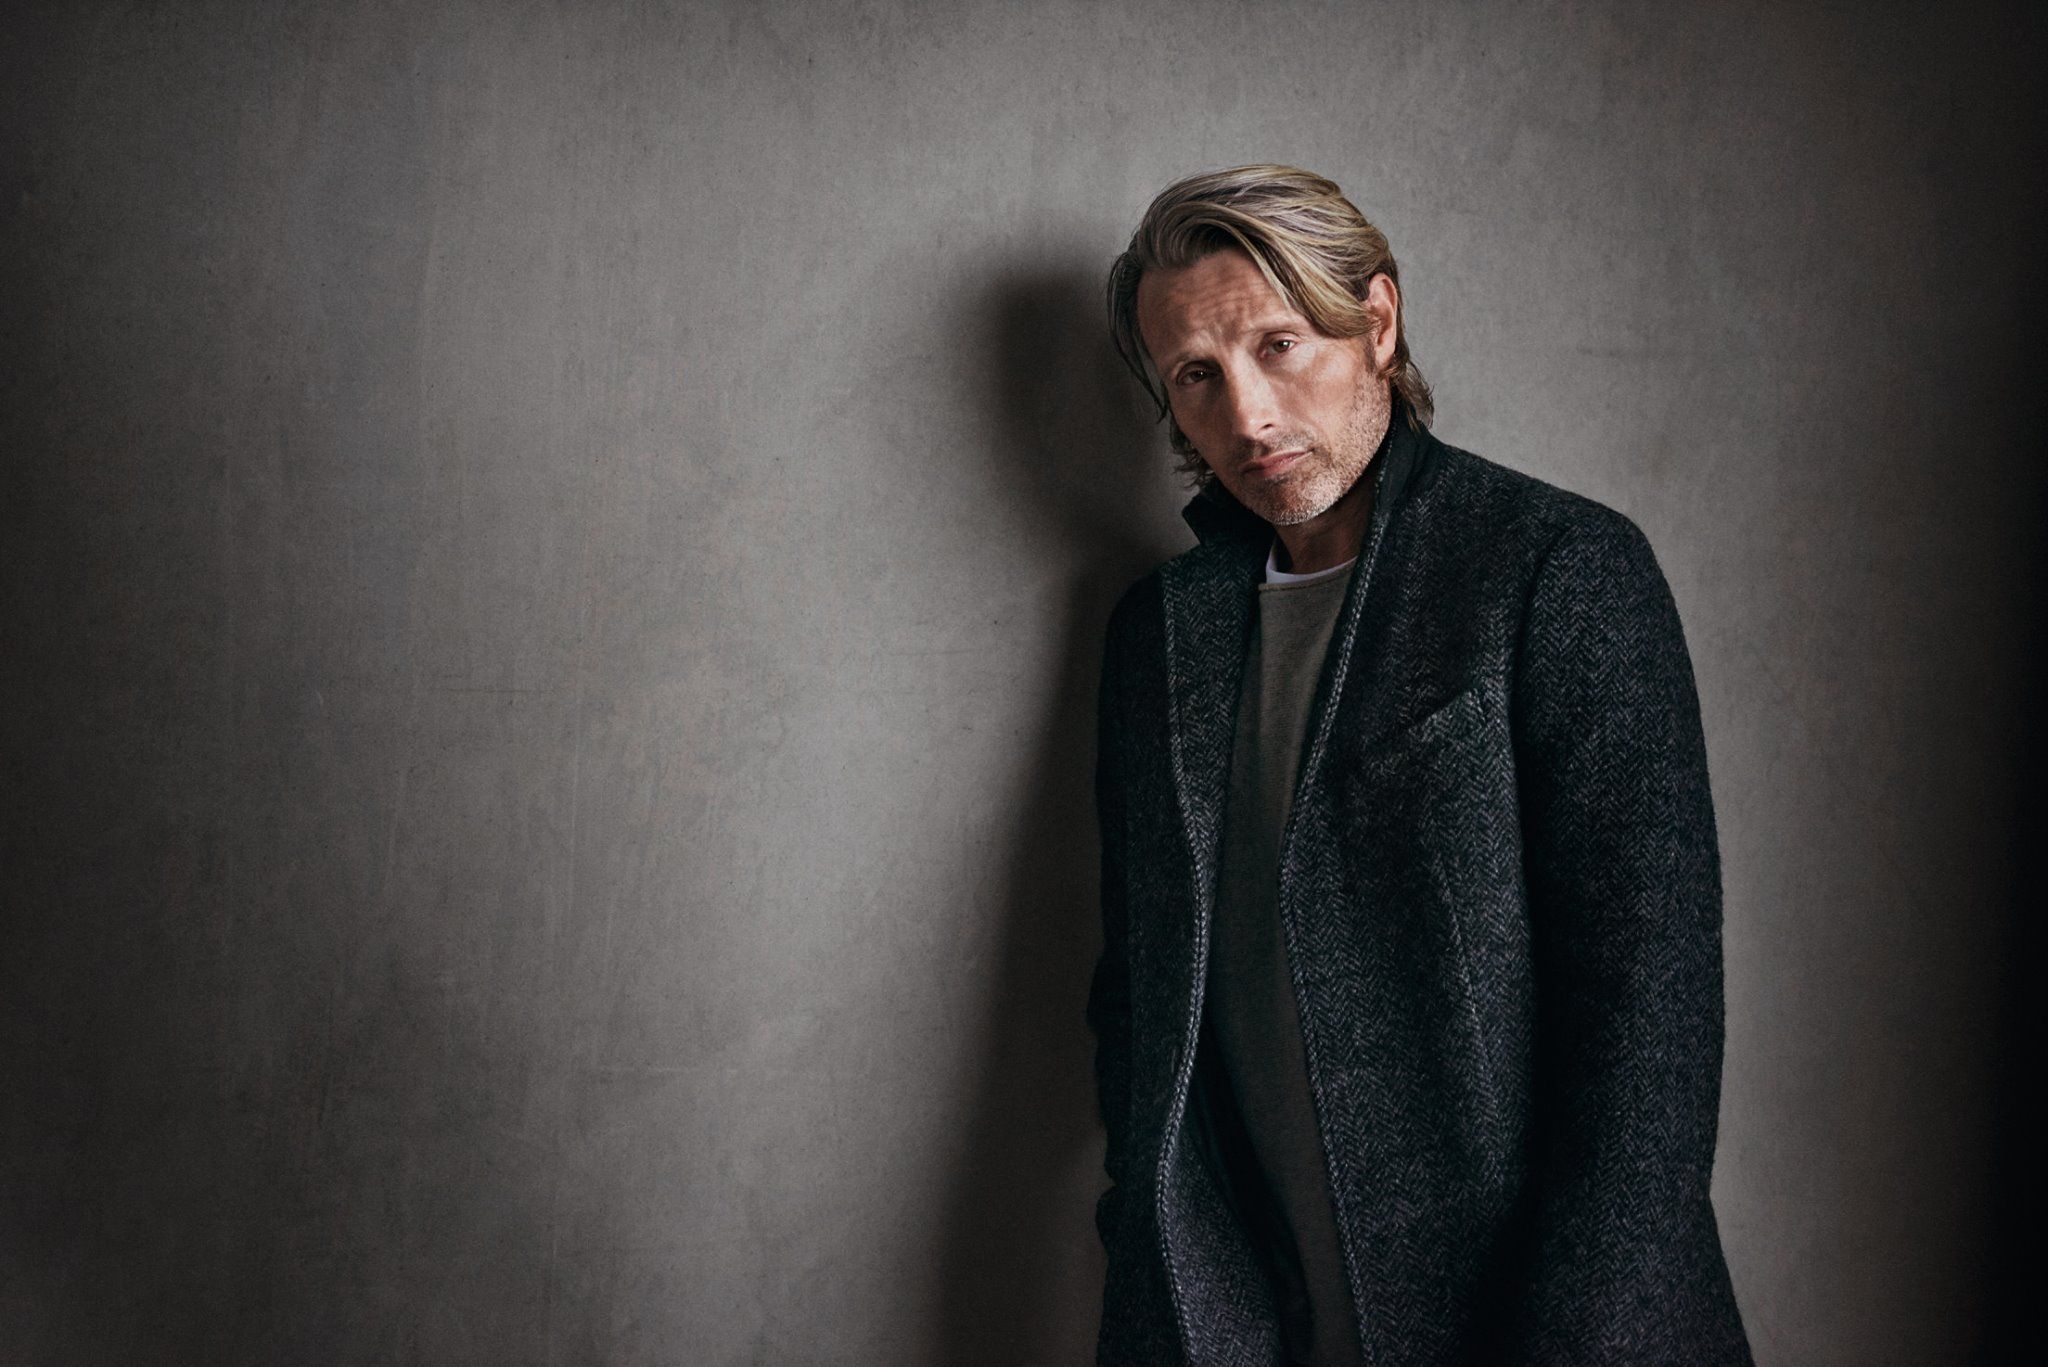 Promotional Images - 001 - Mads Mikkelsen Source - oh my goodness I love him! He's so gorgeous!